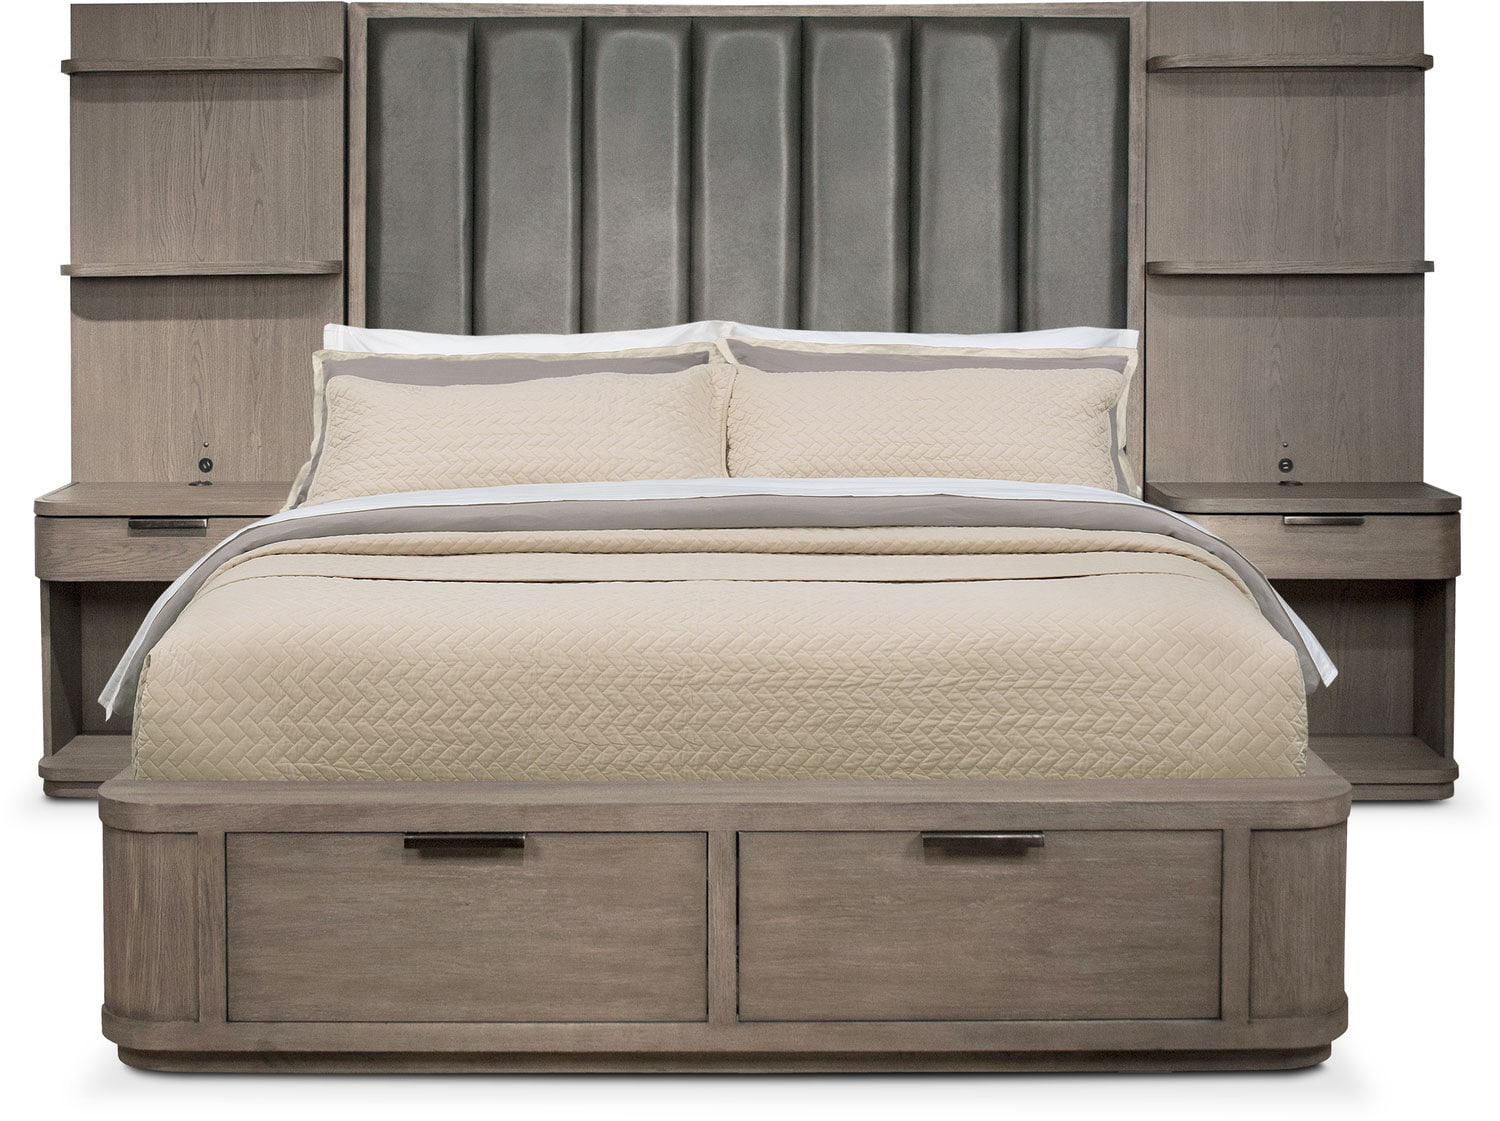 Bedroom Furniture - Malibu King Tall Upholstered Storage Wall Bed - Gray